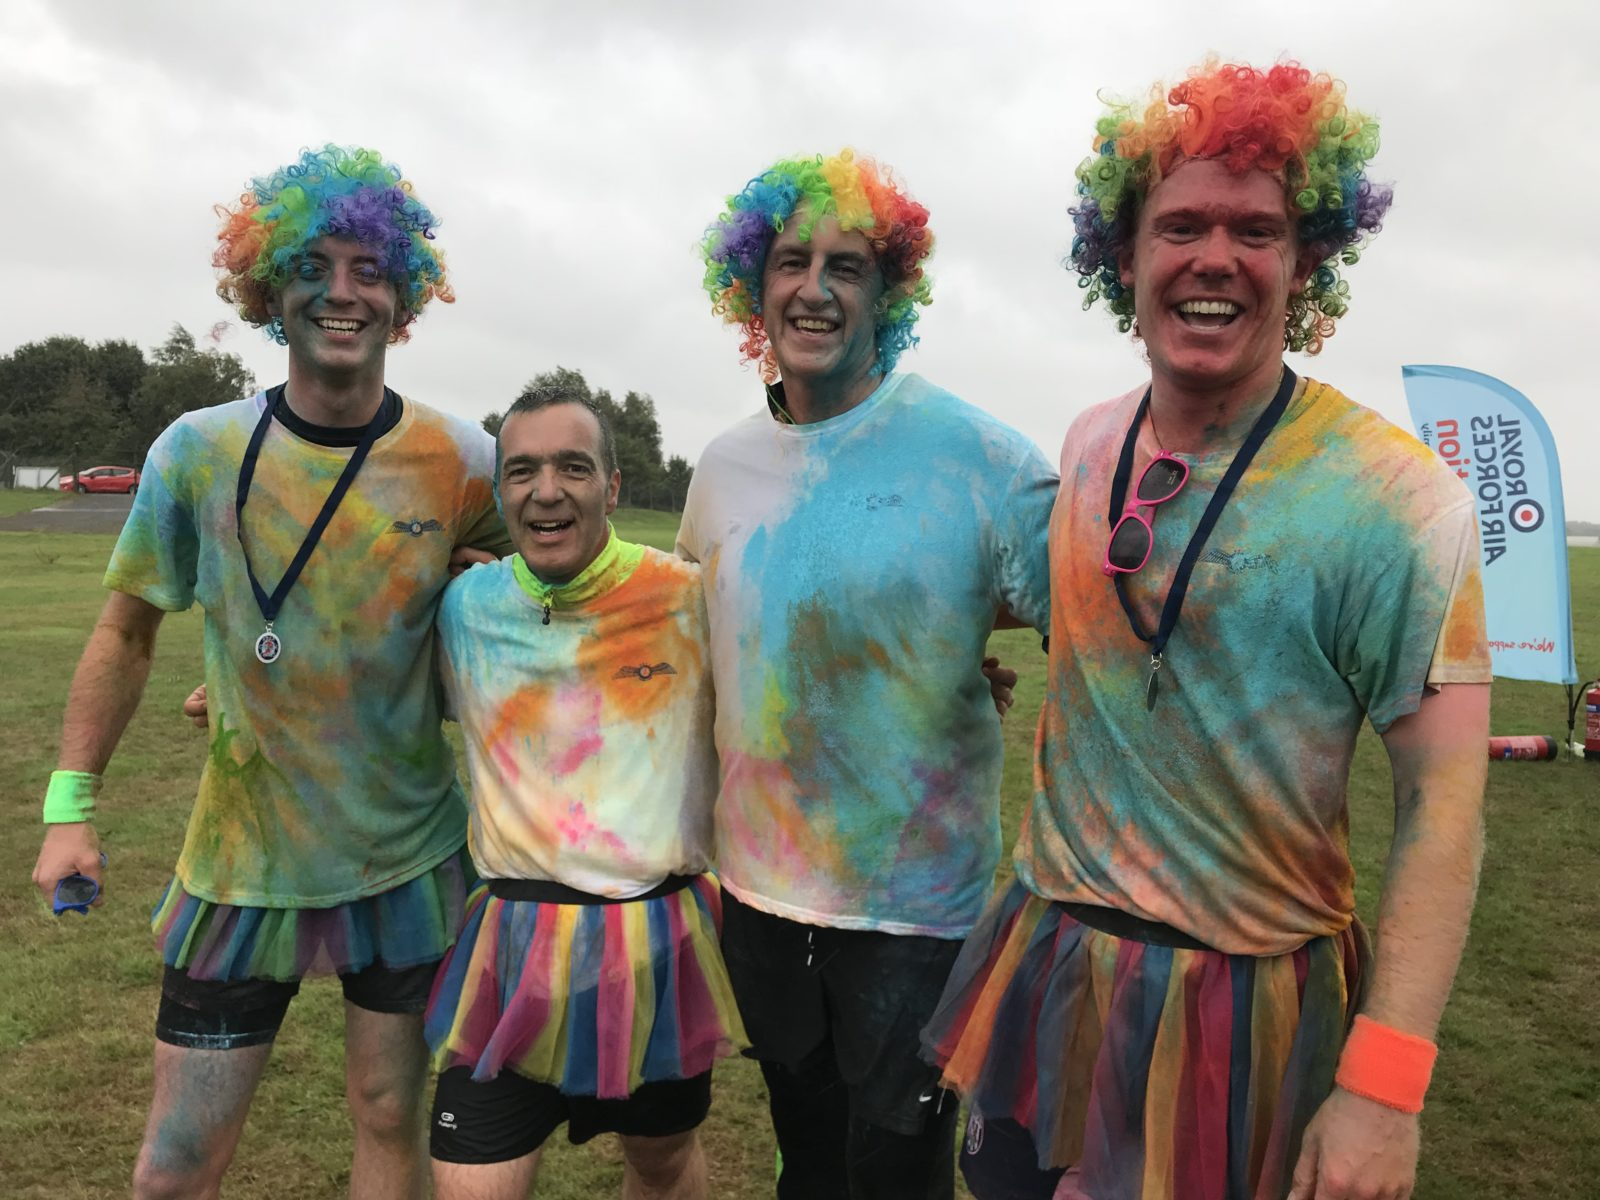 Early birds should sign up now for run with a colourful twist